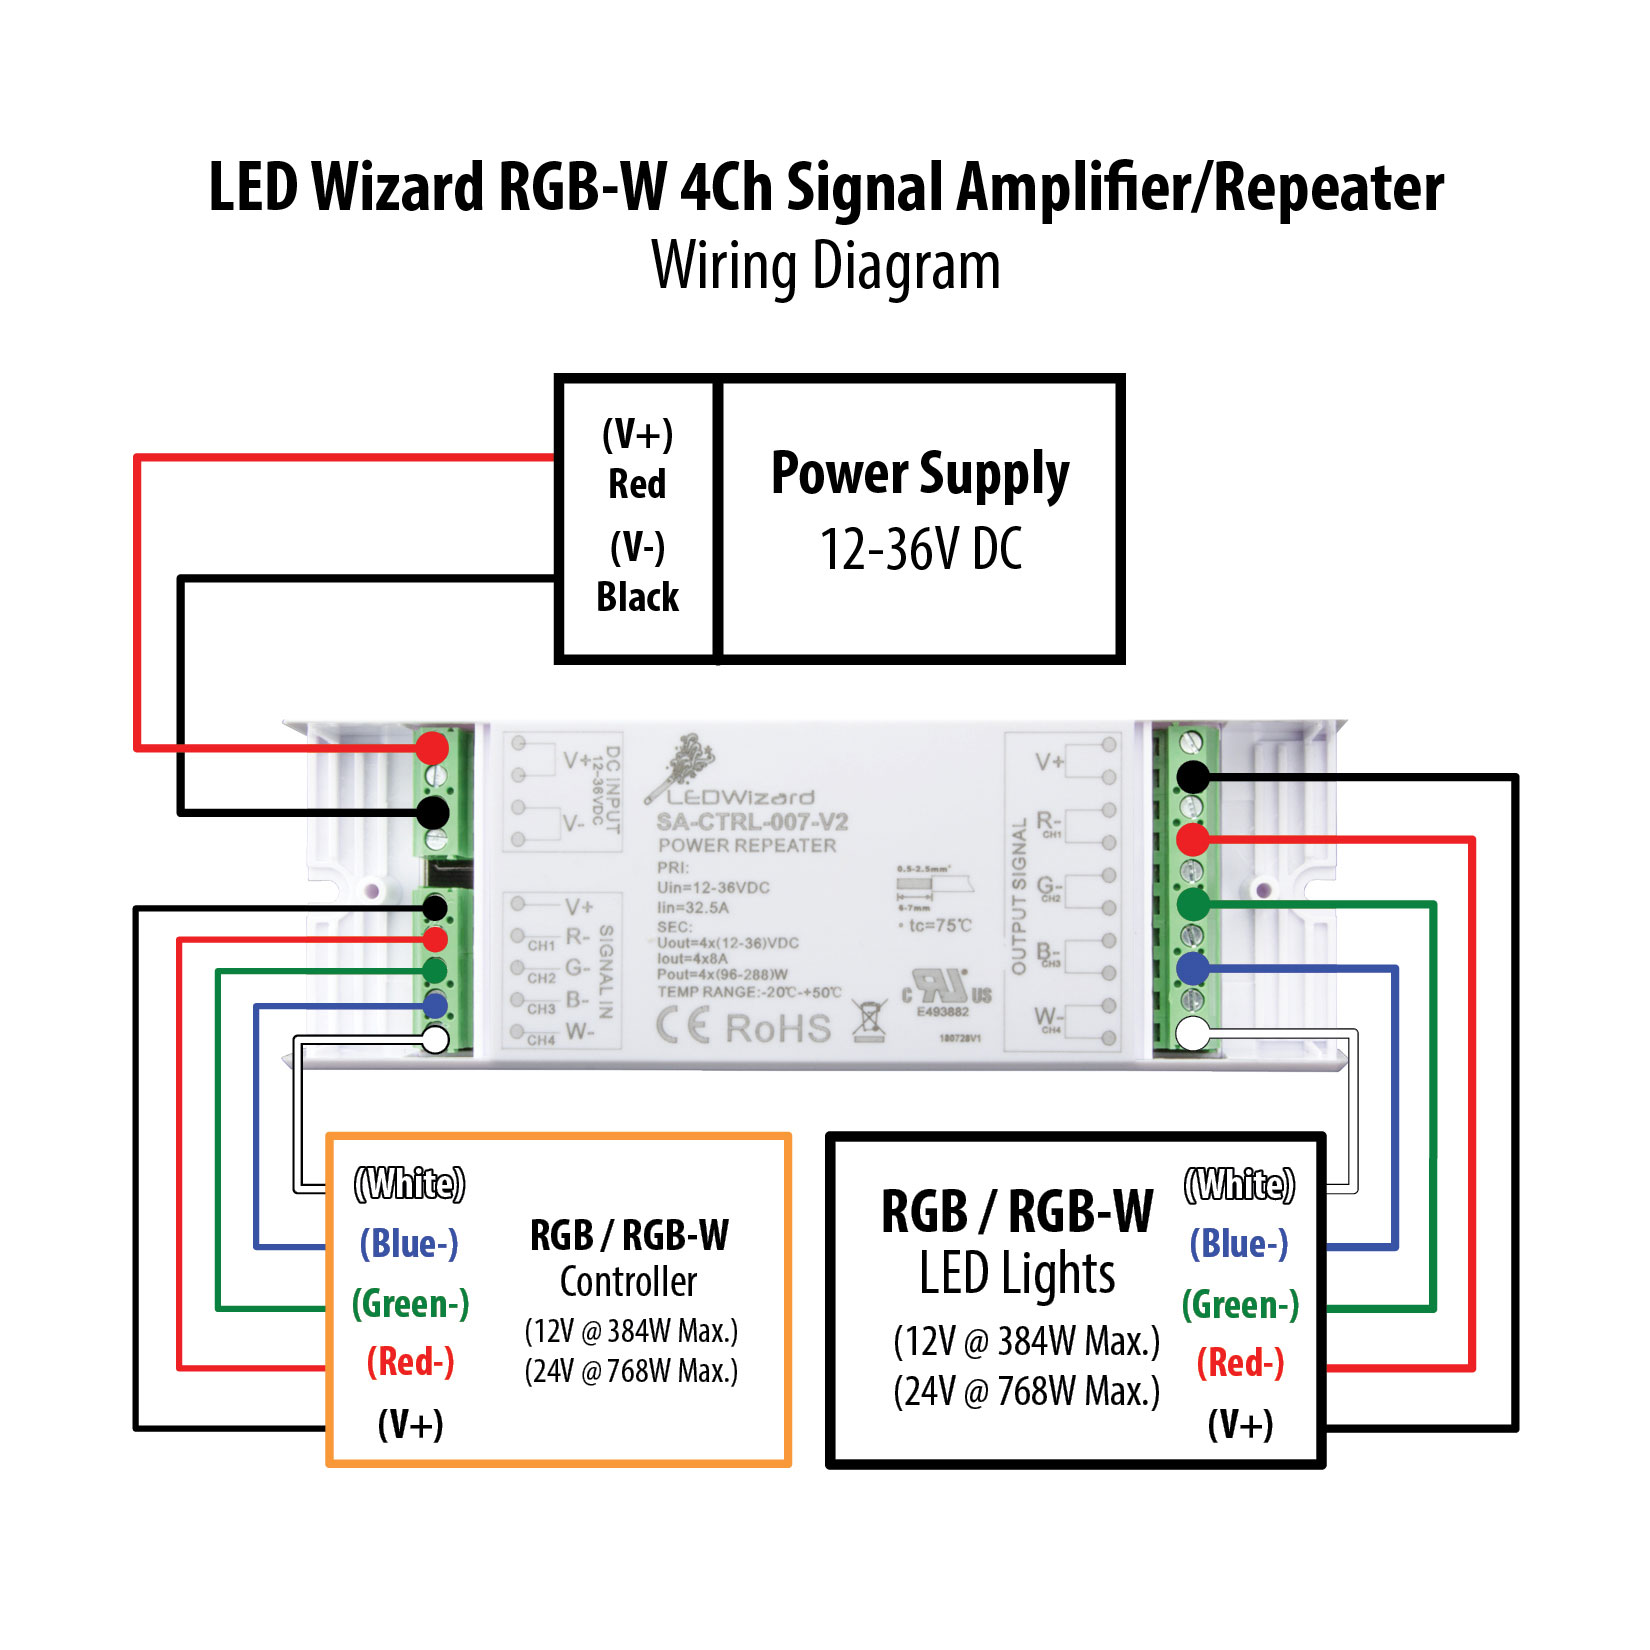 led sign wiring diagram philips chloride exit sign wiring diagram led wizard rgb signal amplifier/repeater